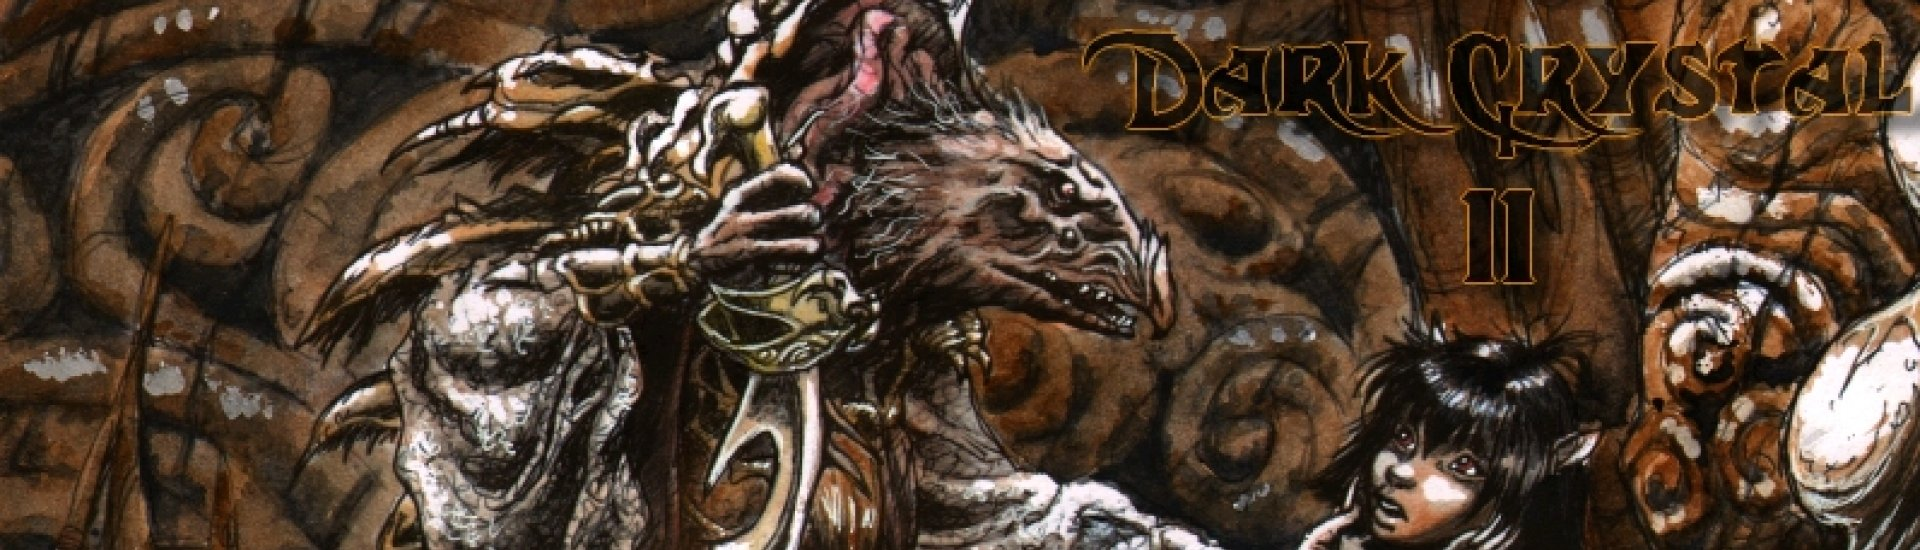 Before the Dark Crystal cover